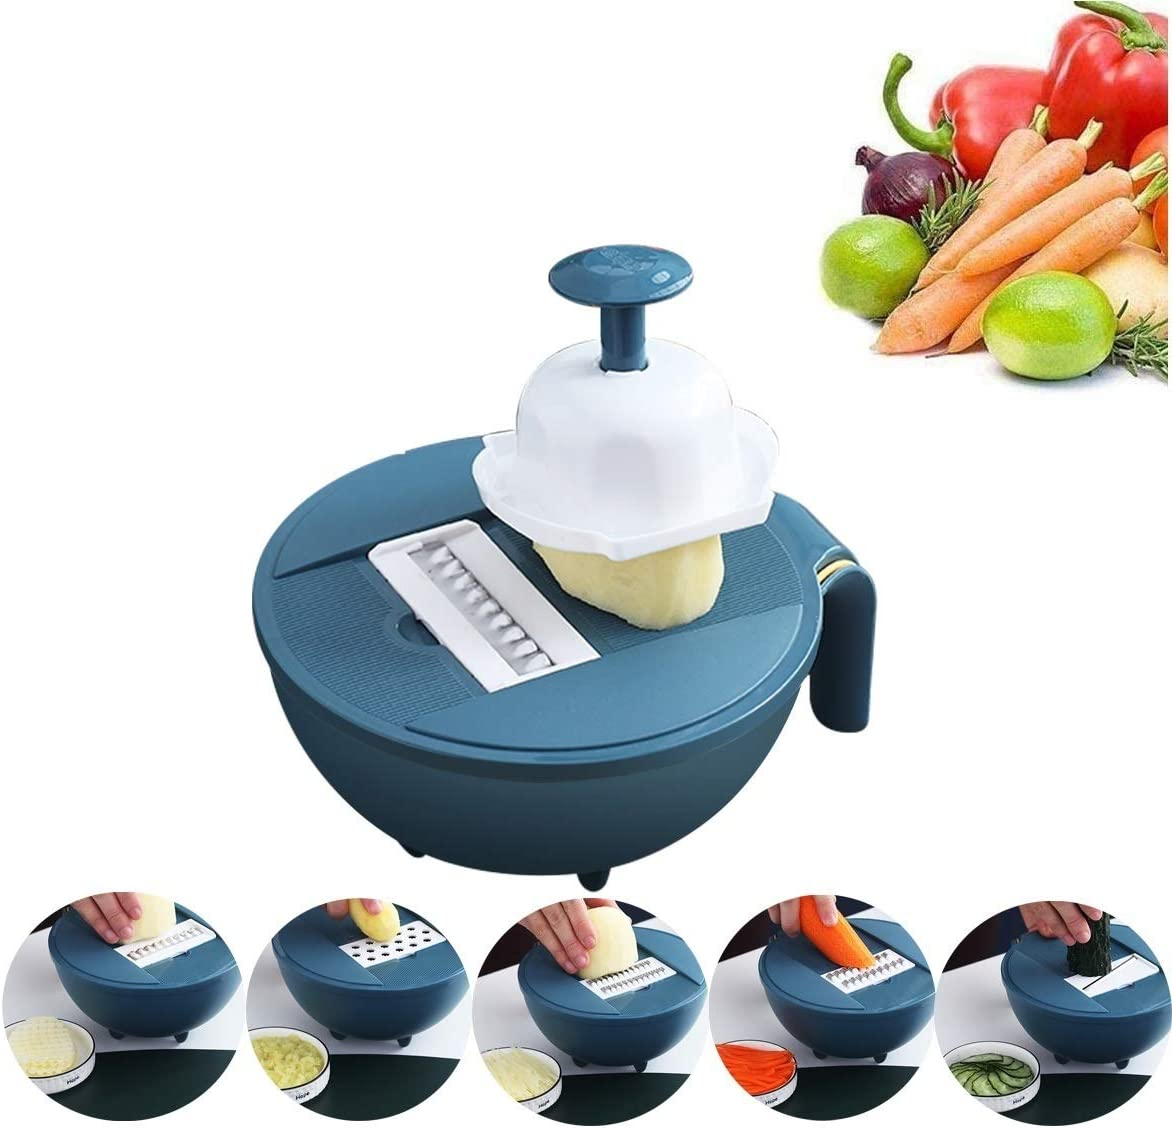 choary Wheat Straw Vegetable Choppers - 10 in 1 Mandoline Slicer Multi-Function Food Cutter with 5 Interchangeable Stainless Steel Blades with Colander Chip Slicer (Dark BLUE)